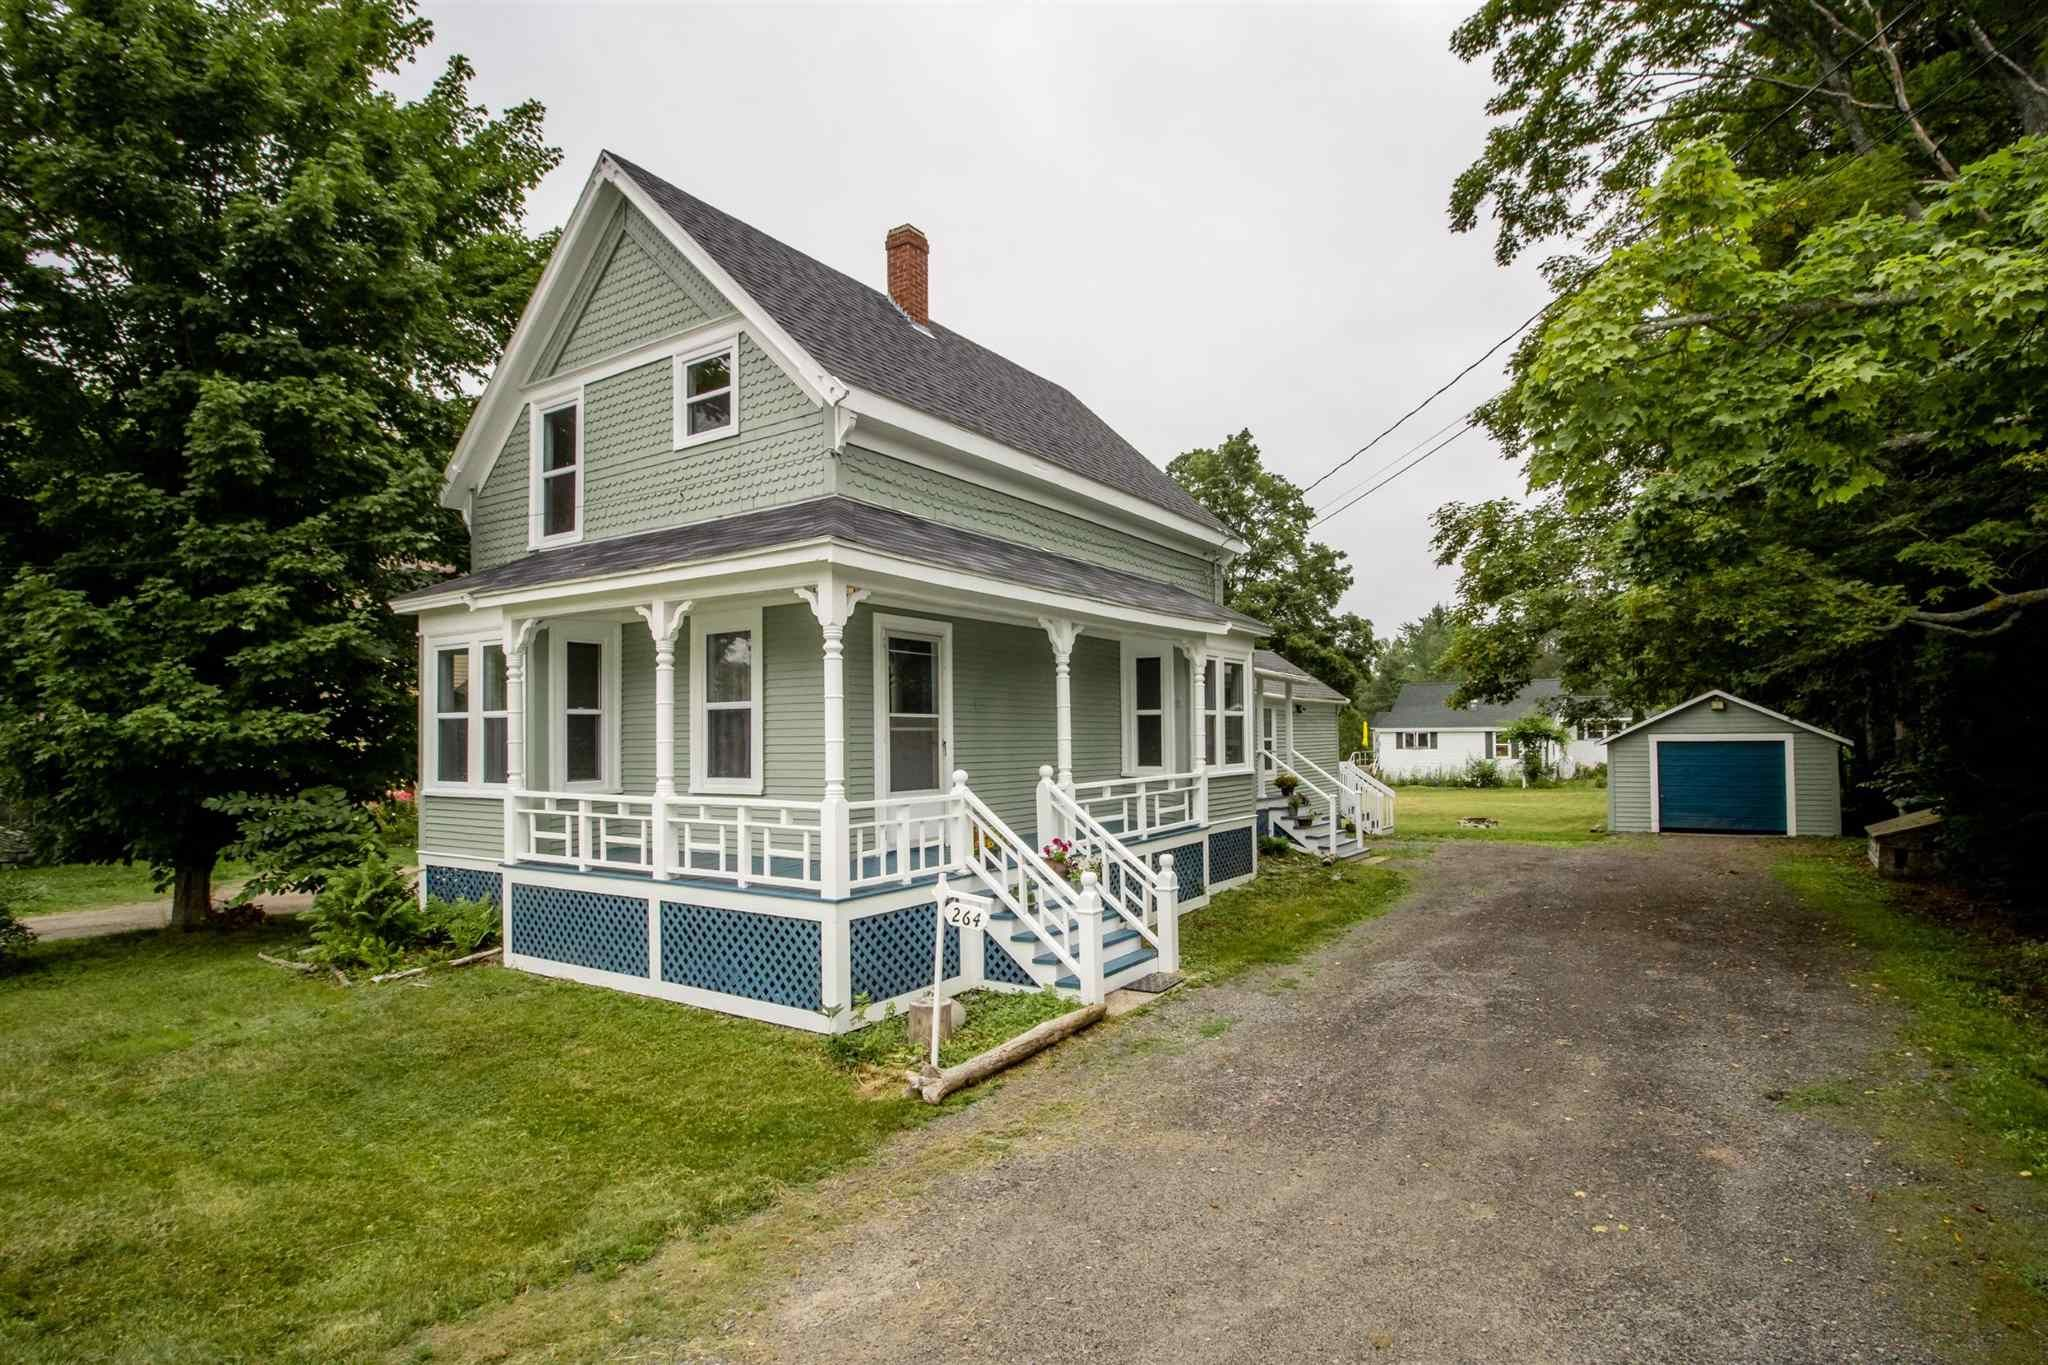 Main Photo: 264 Commercial Street in Berwick: 404-Kings County Residential for sale (Annapolis Valley)  : MLS®# 202119037